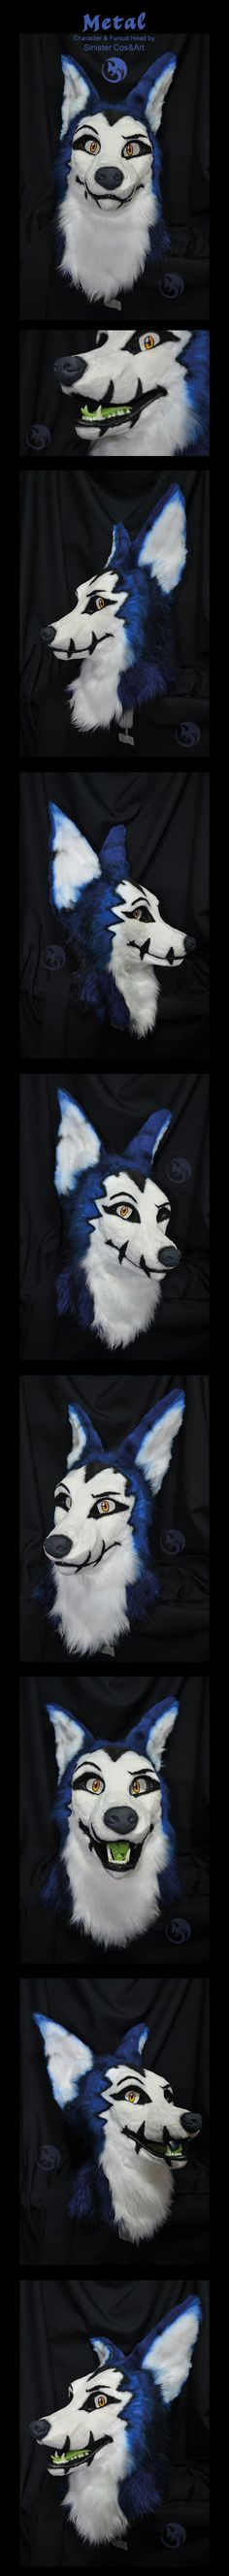 Metal - Fursuit Head by Metal-CosxArt.deviantart.com on @DeviantArt - I really really like this one